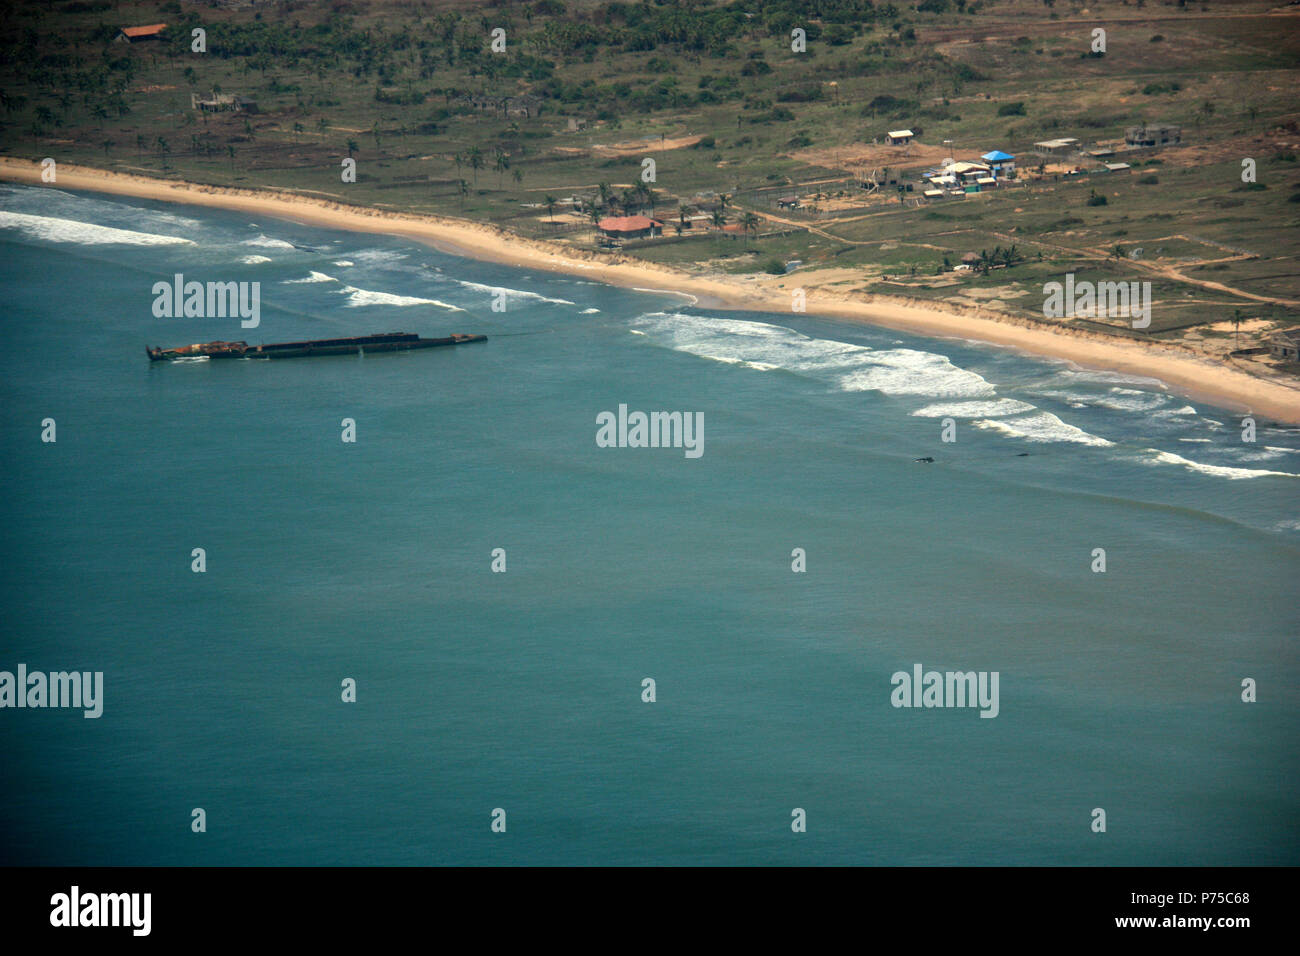 Aerial View of a disassembled Ship Wreckage off the Coast of Ghana - Stock Image